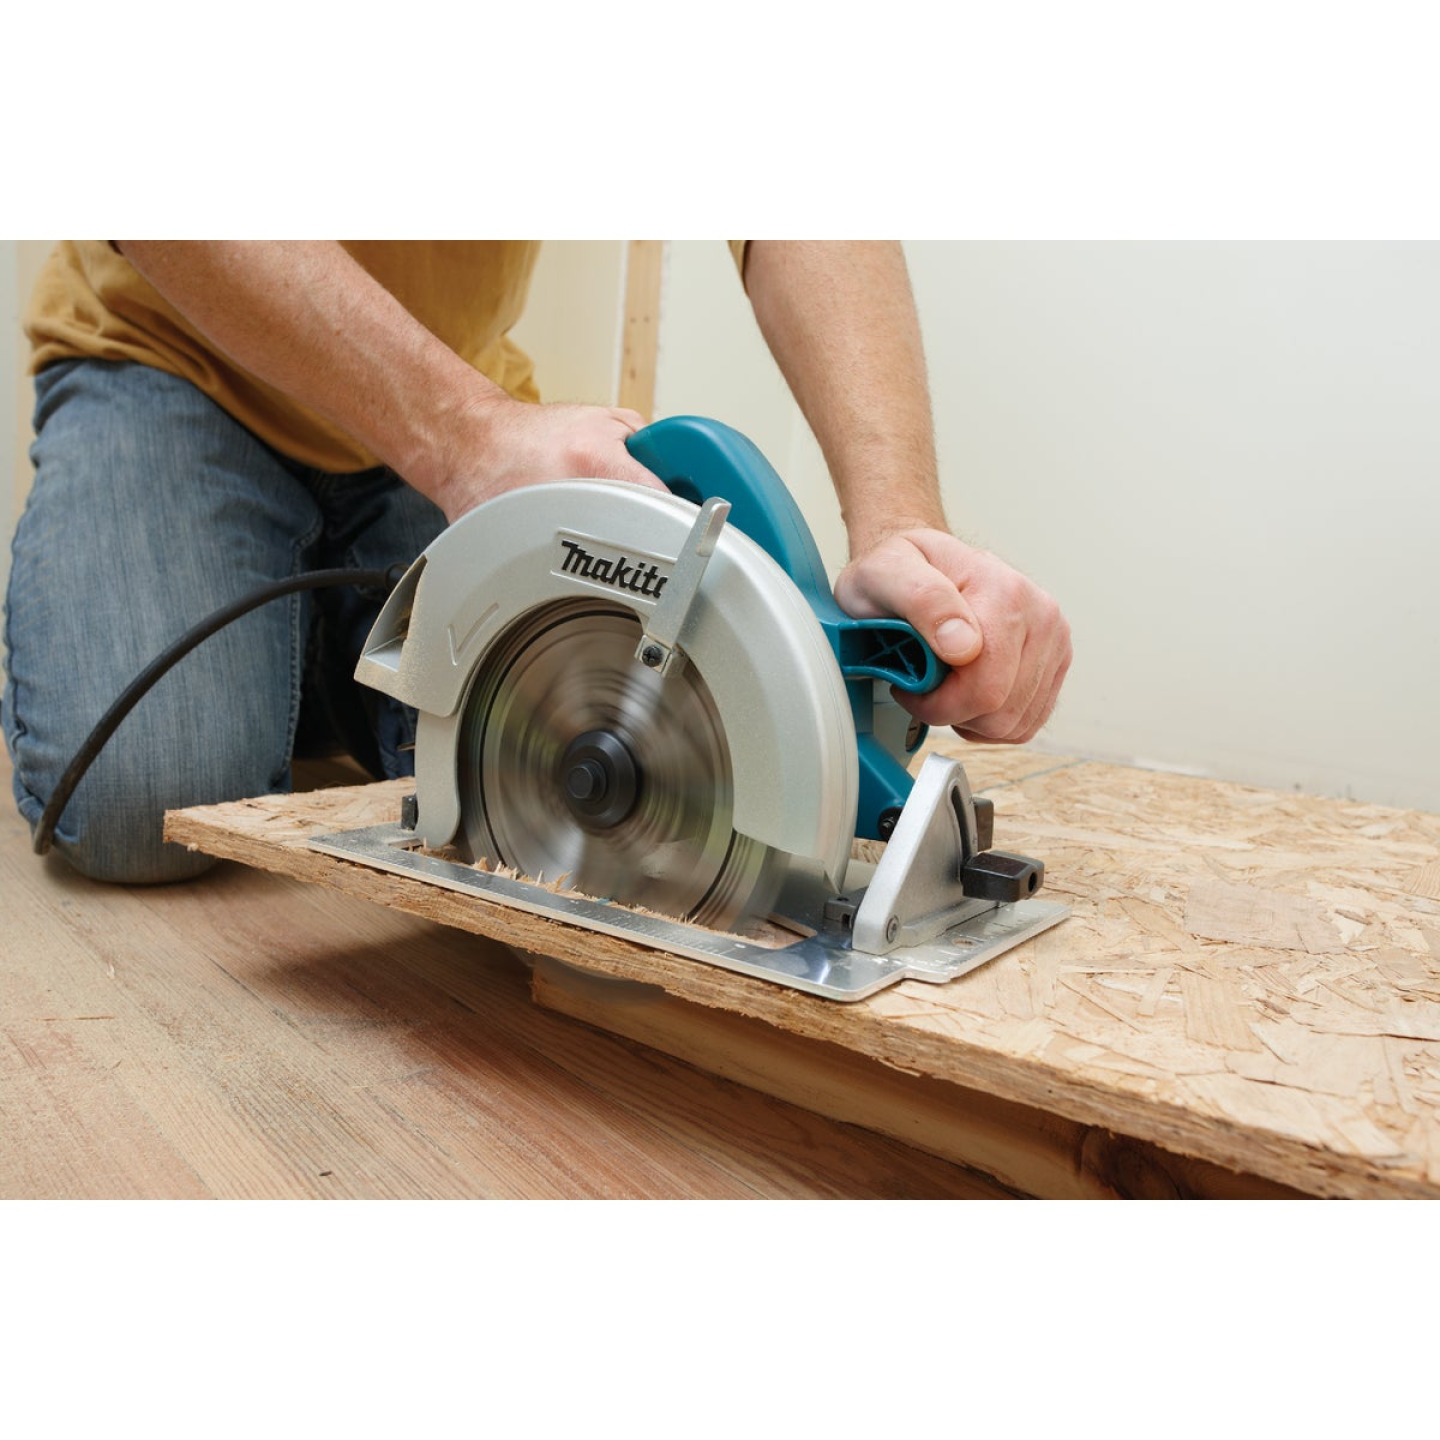 Makita 7-1/4 In. 15-Amp Contractor Circular Saw Image 3